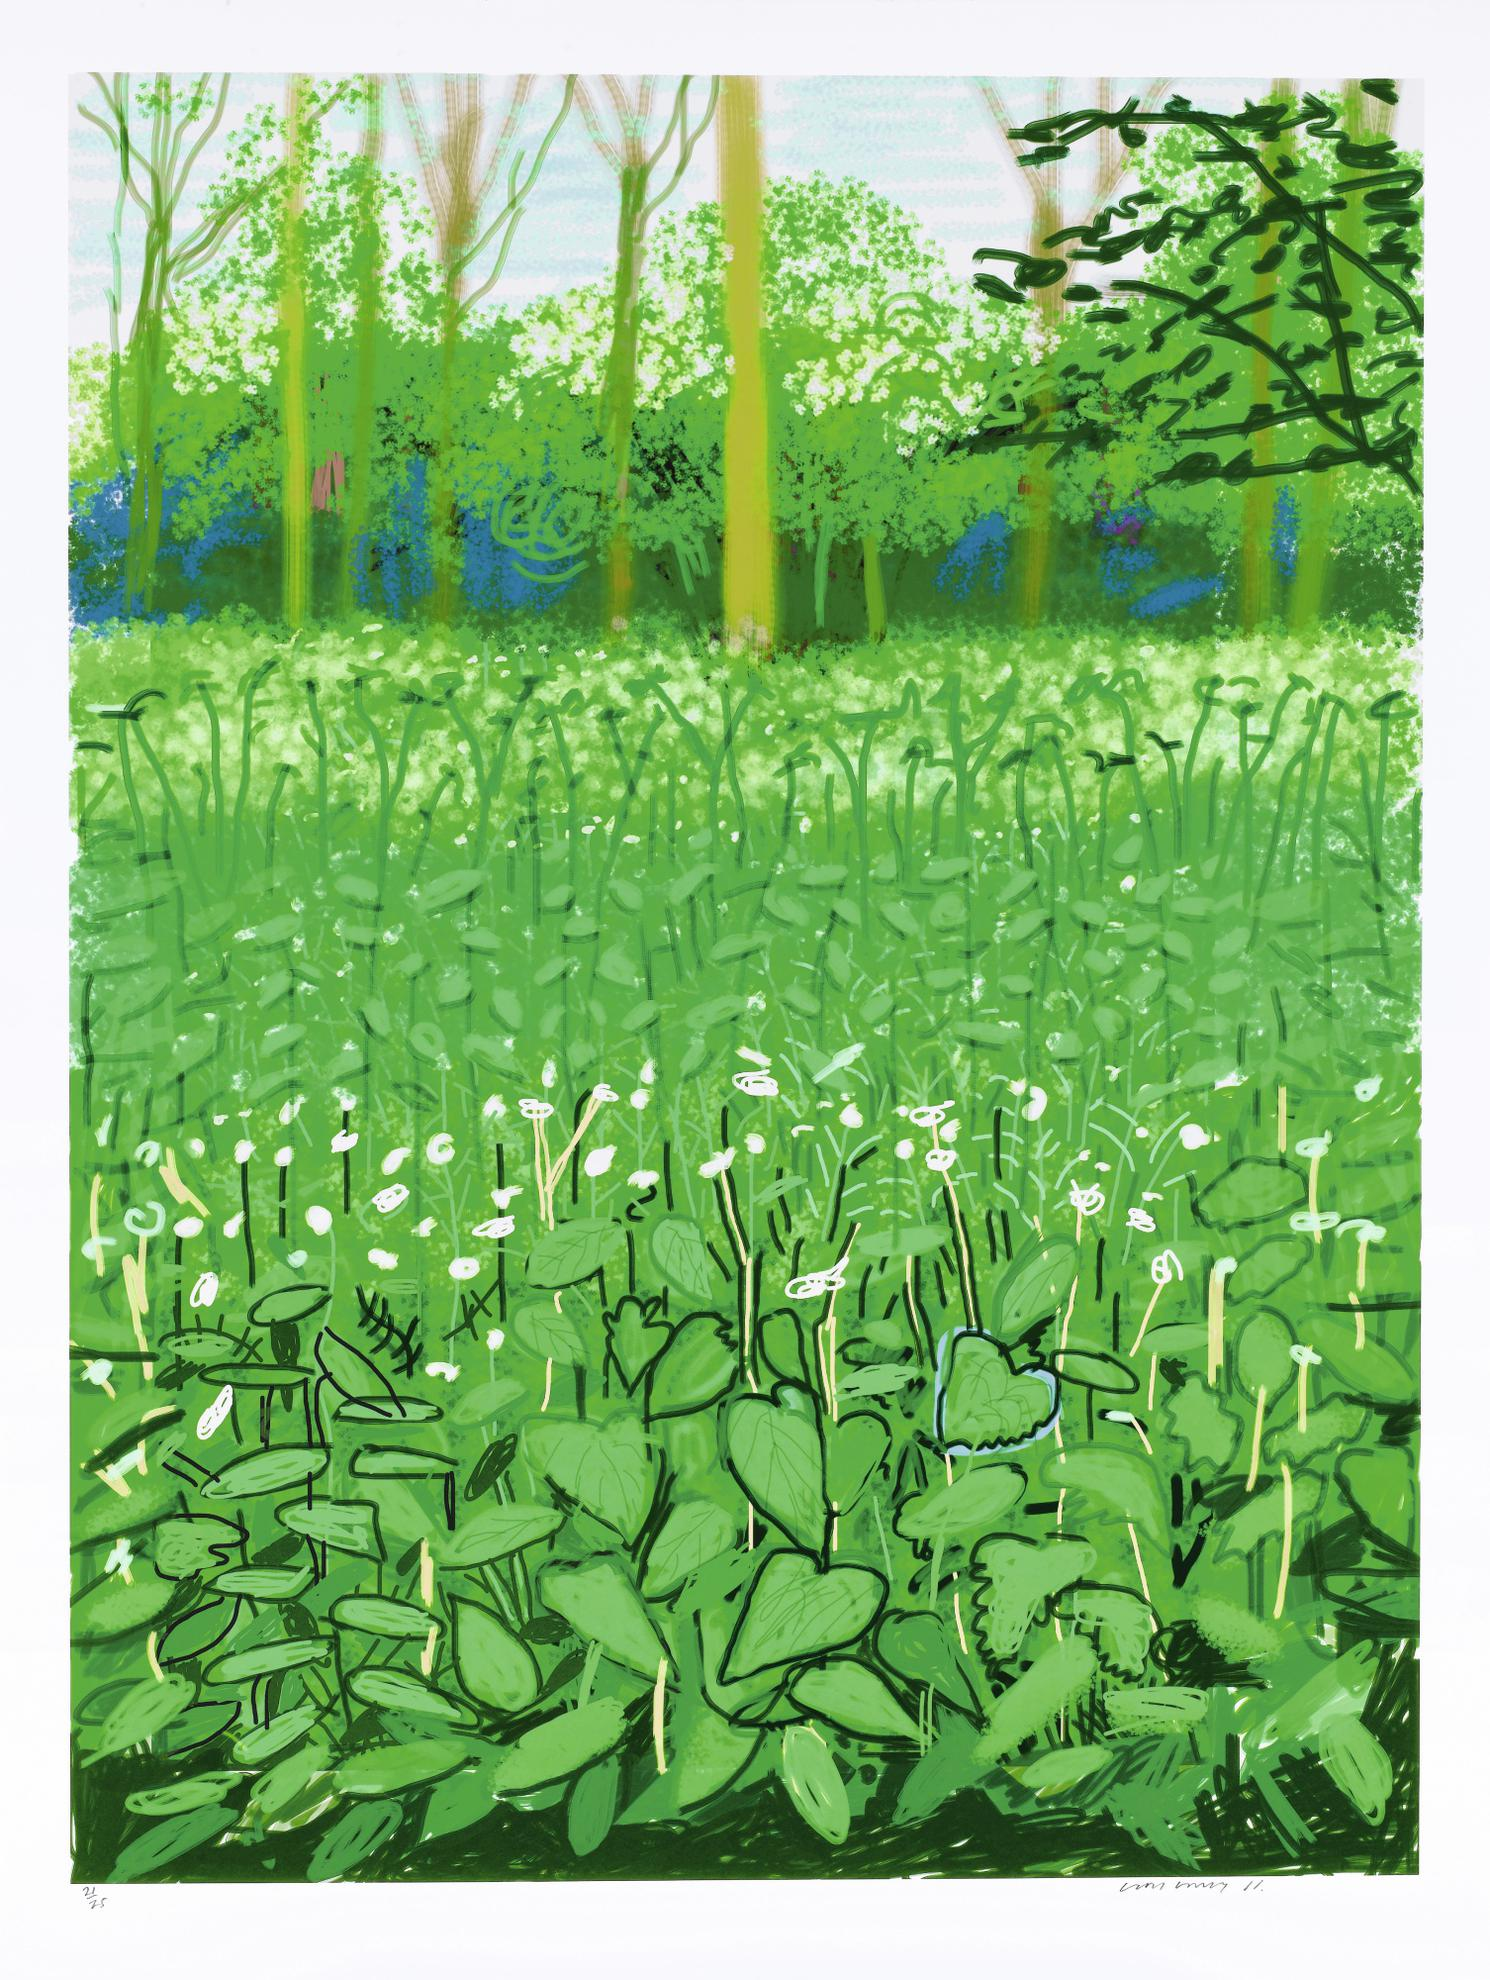 David Hockney-The Arrival Of Spring In Woldgate, East Yorkshire In 2011. 6 May-2011